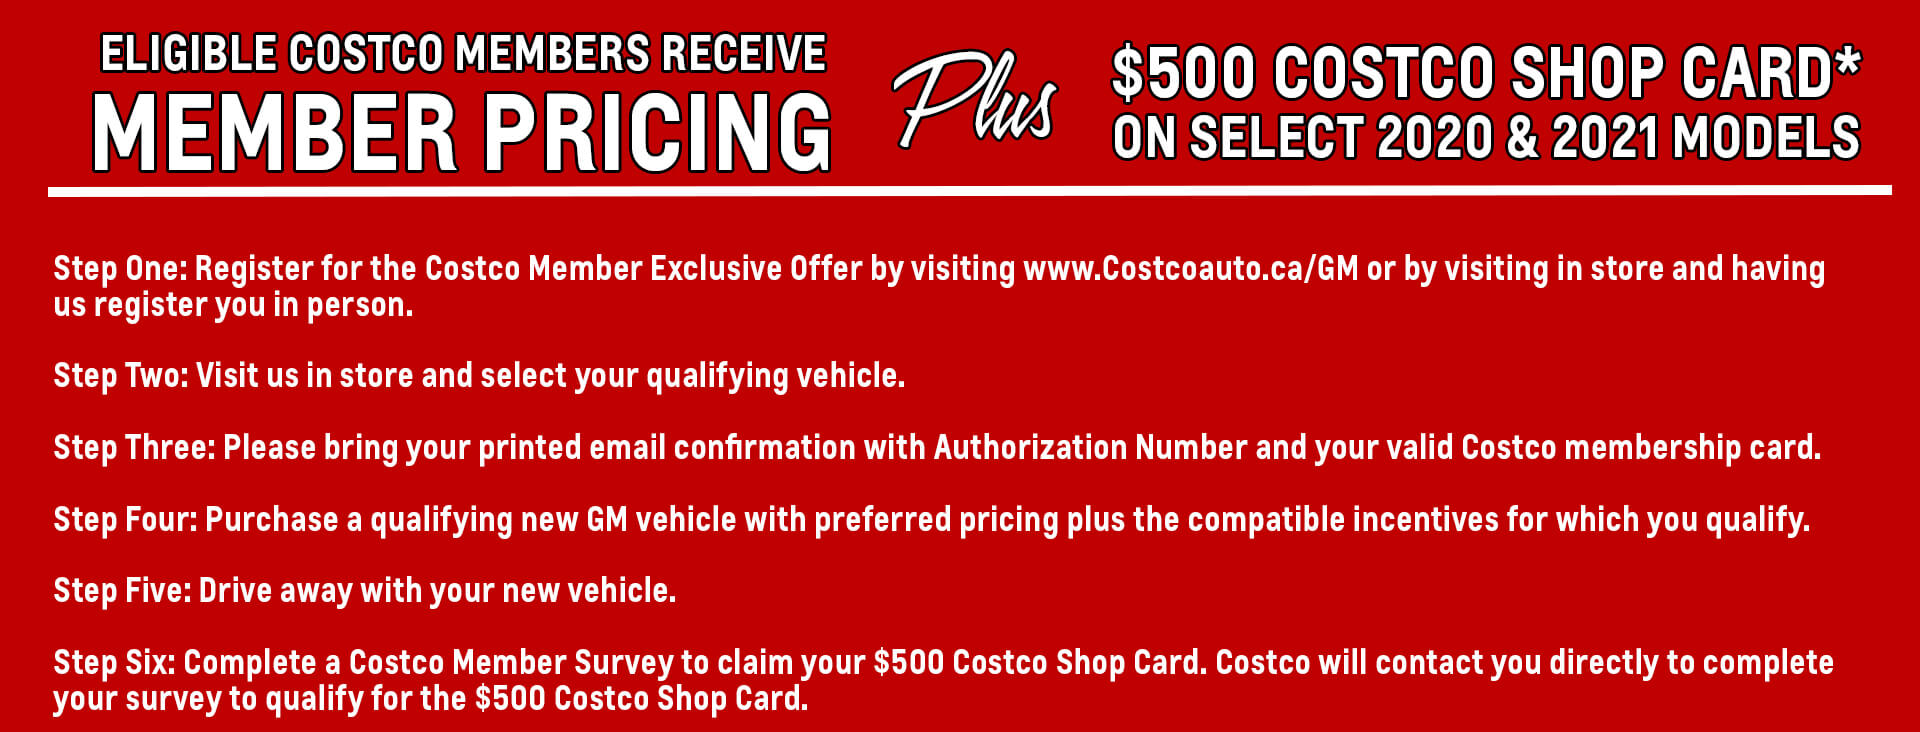 Costco Eligibility and program rules